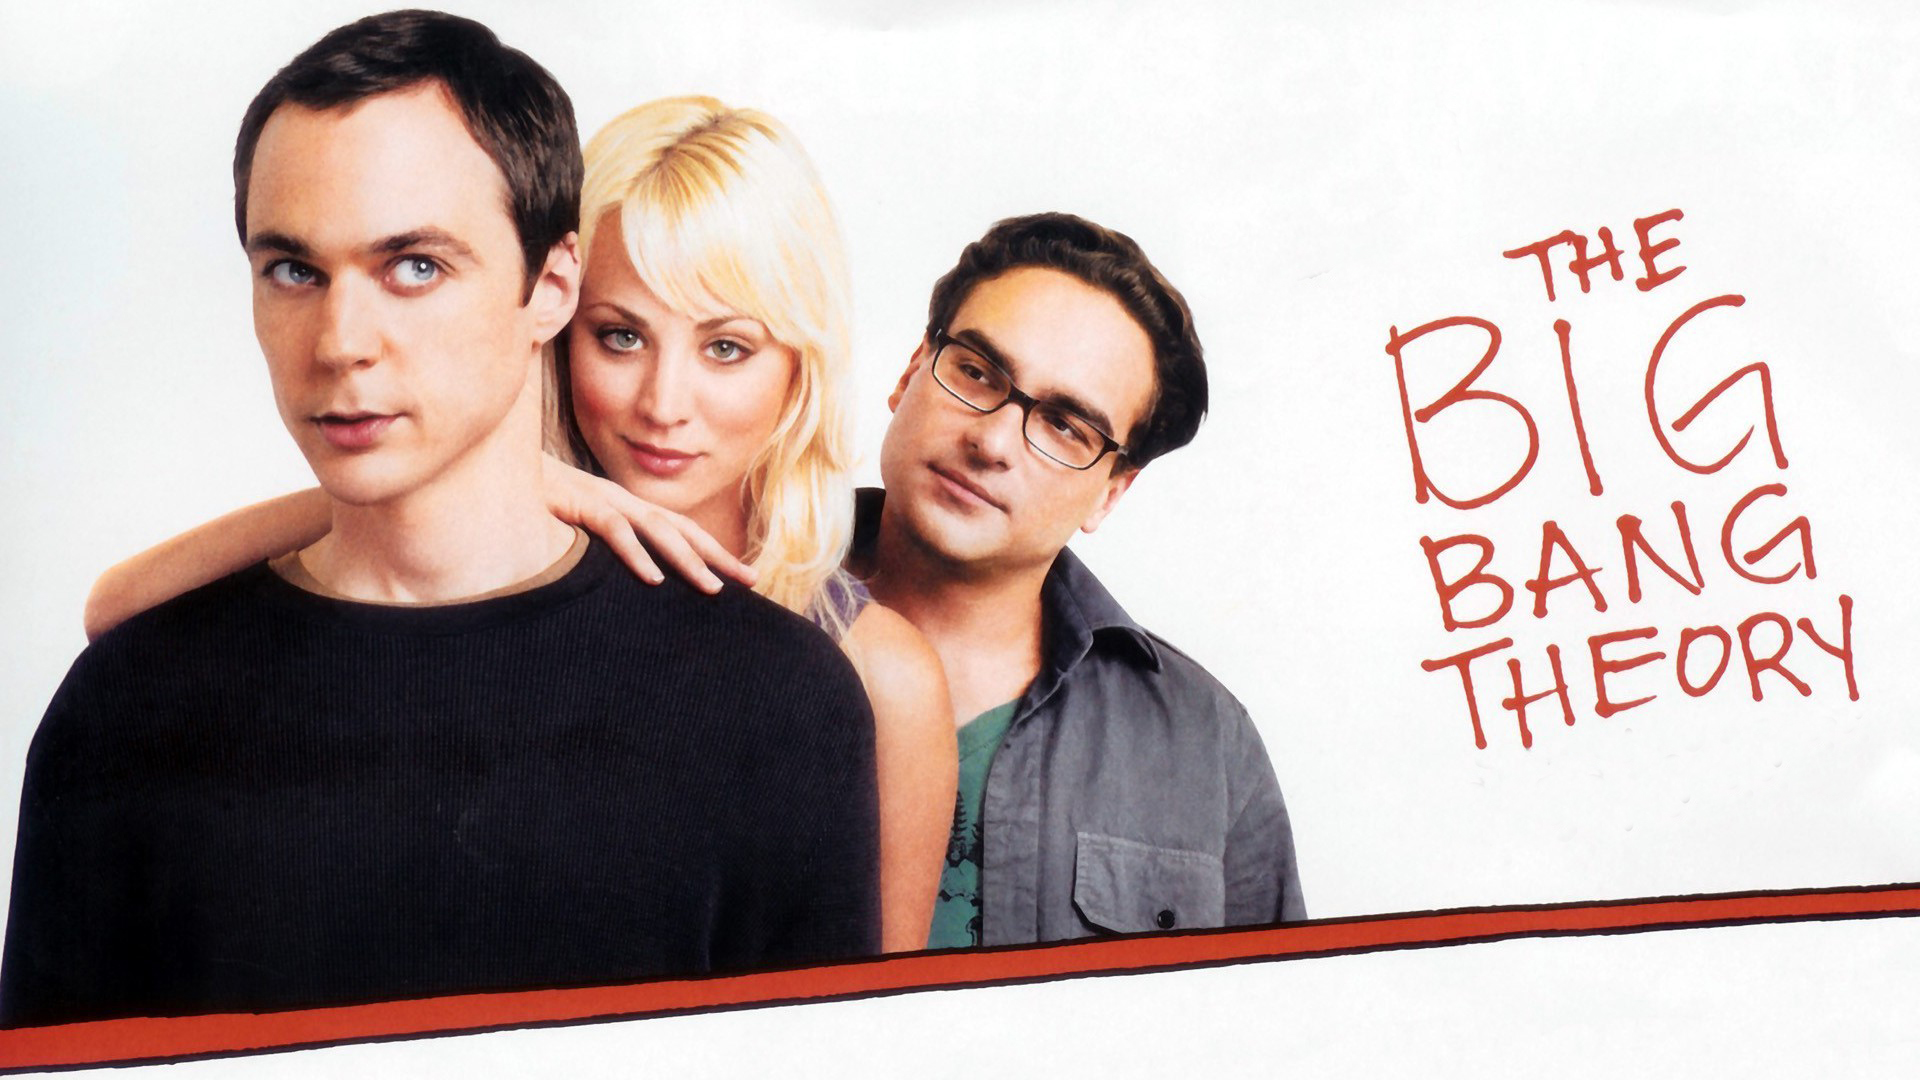 Big Bang Theory 1920x1080  Wallpaper, High Definition, High Quality